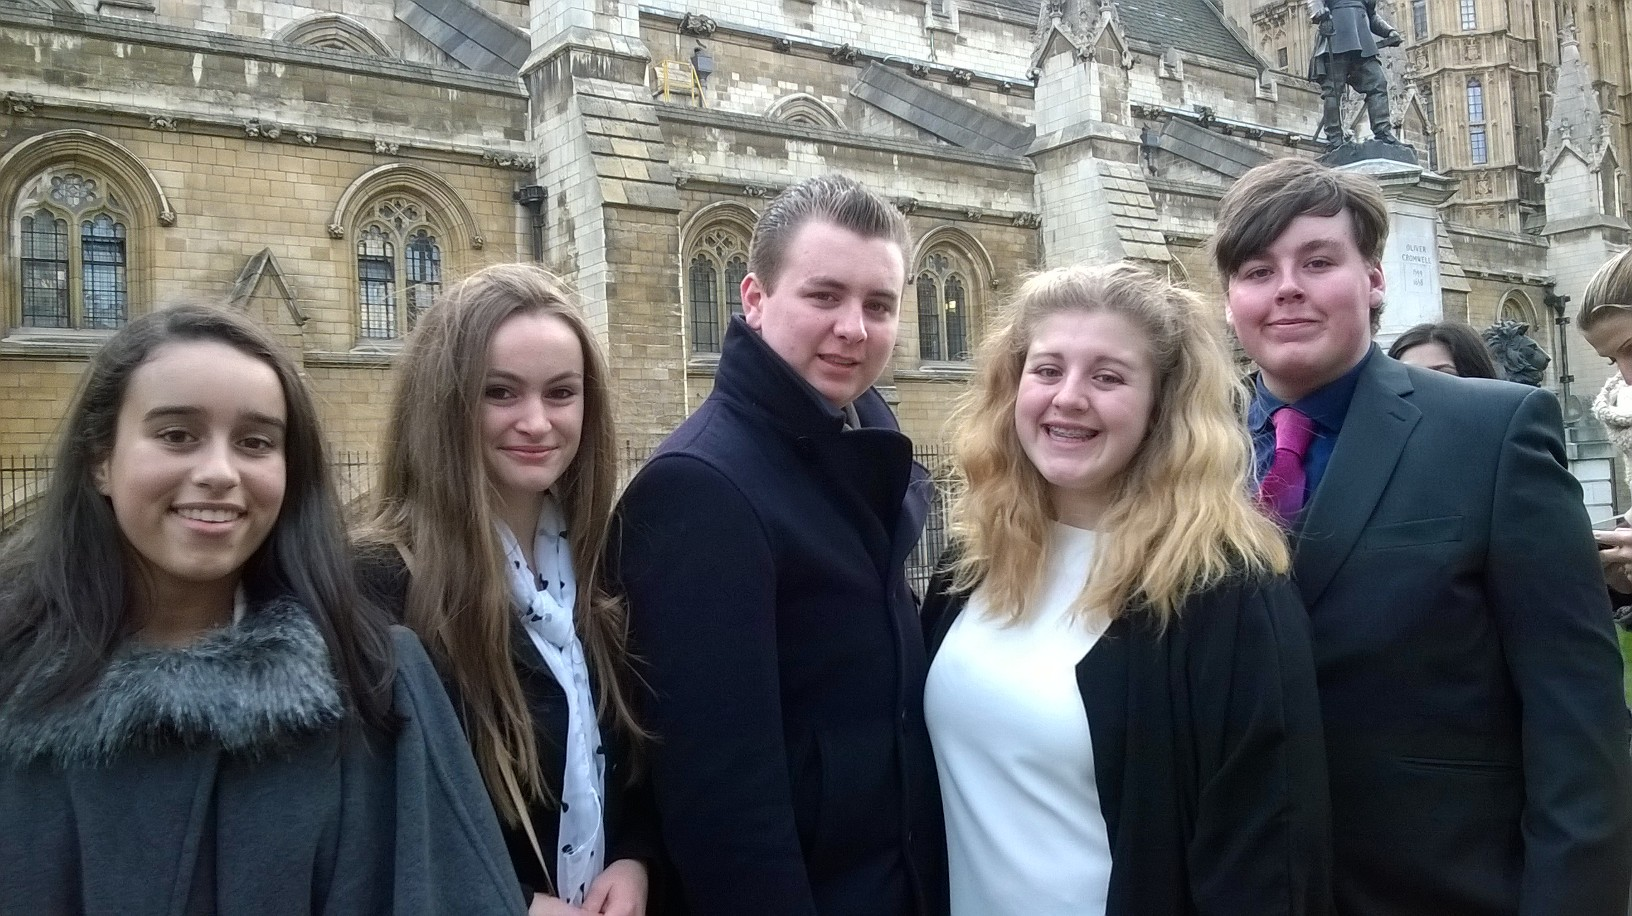 Hertfordshire Member of Youth Parliament makes speech at annual debating session in House of Commons